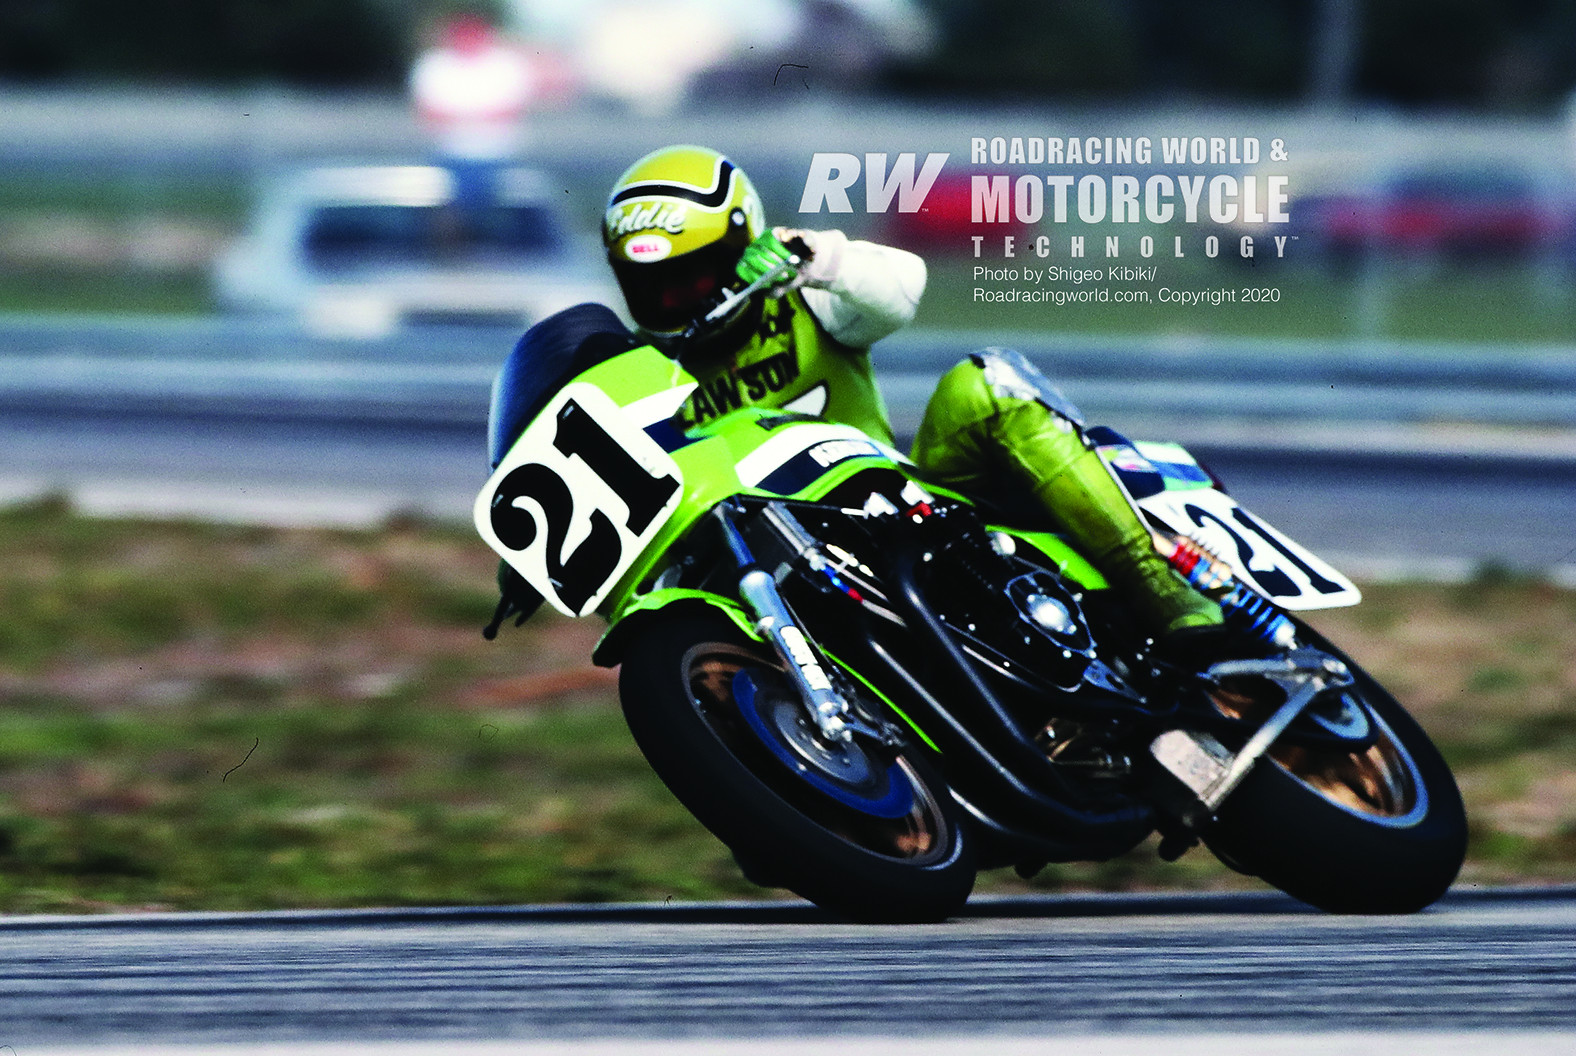 Eddie Lawson (21) riding a Kawasaki KZ1000 in an AMA Superbike race at Daytona in 1982. Photo by Shigeo Kibiki. Lawson's Superbike was the inspiration for the 1999 Kawasaki ZRX1100 being raffled by AHRMA.